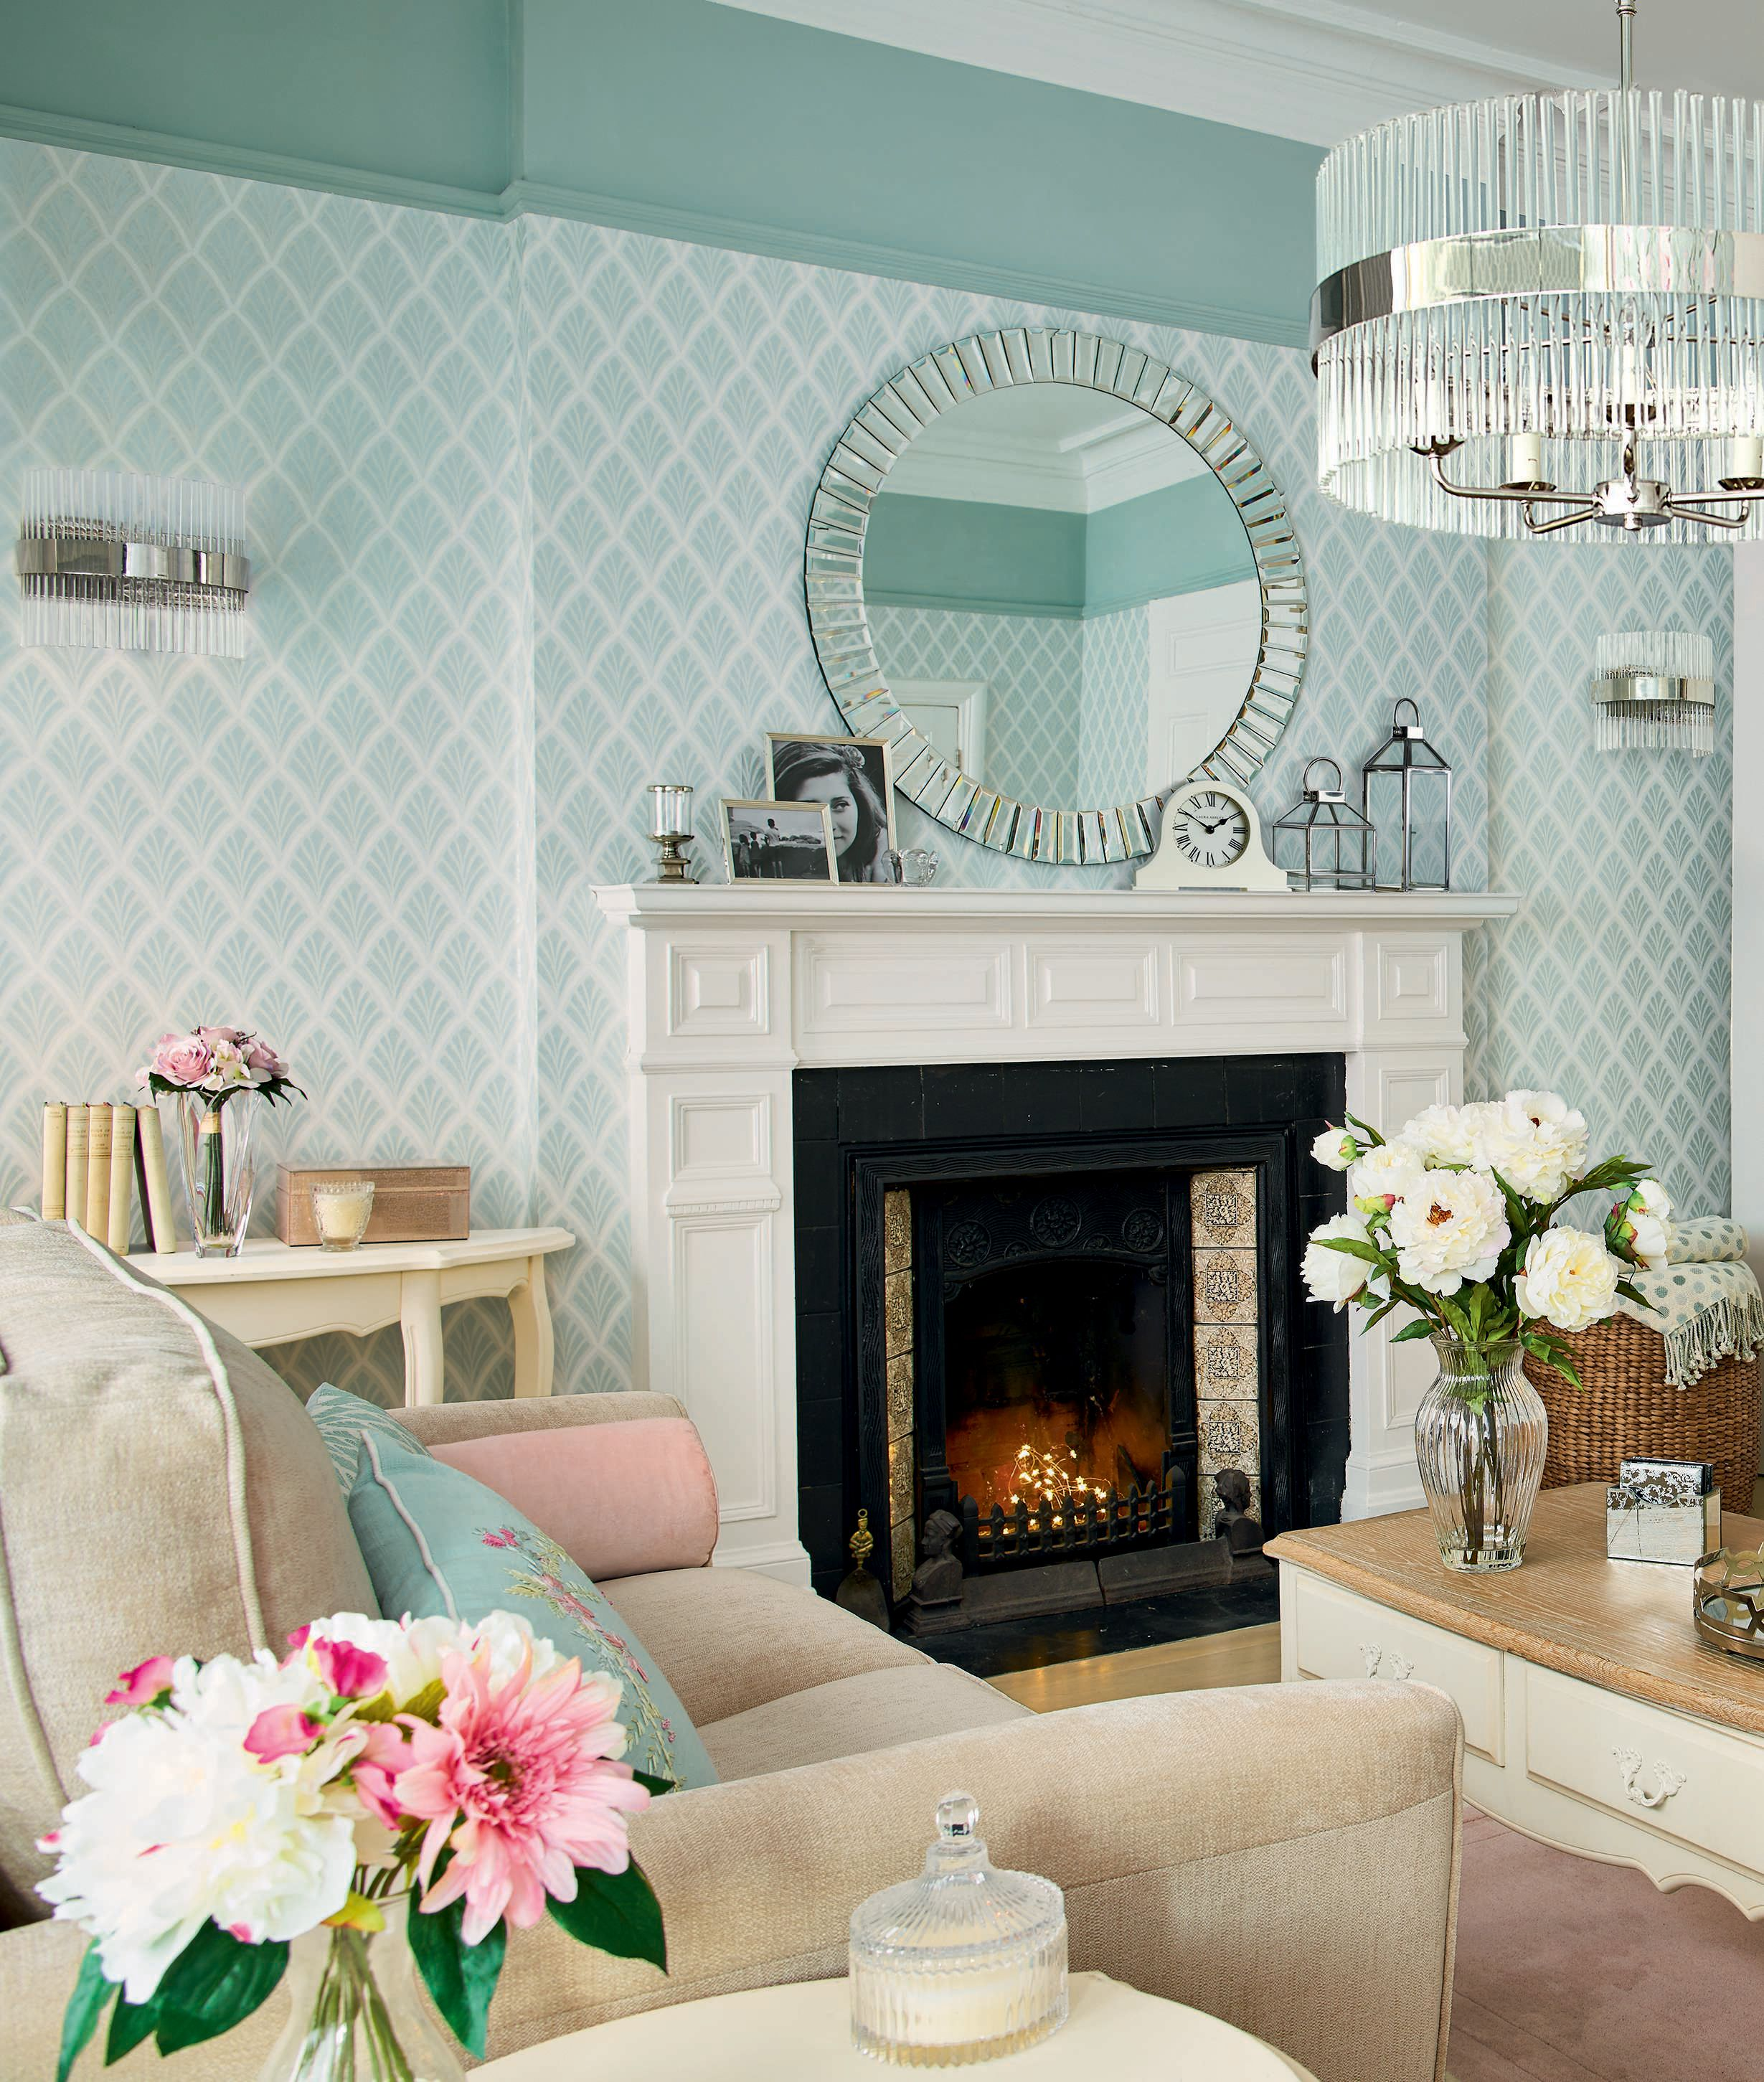 Introducing pastel colours into your interiors can help